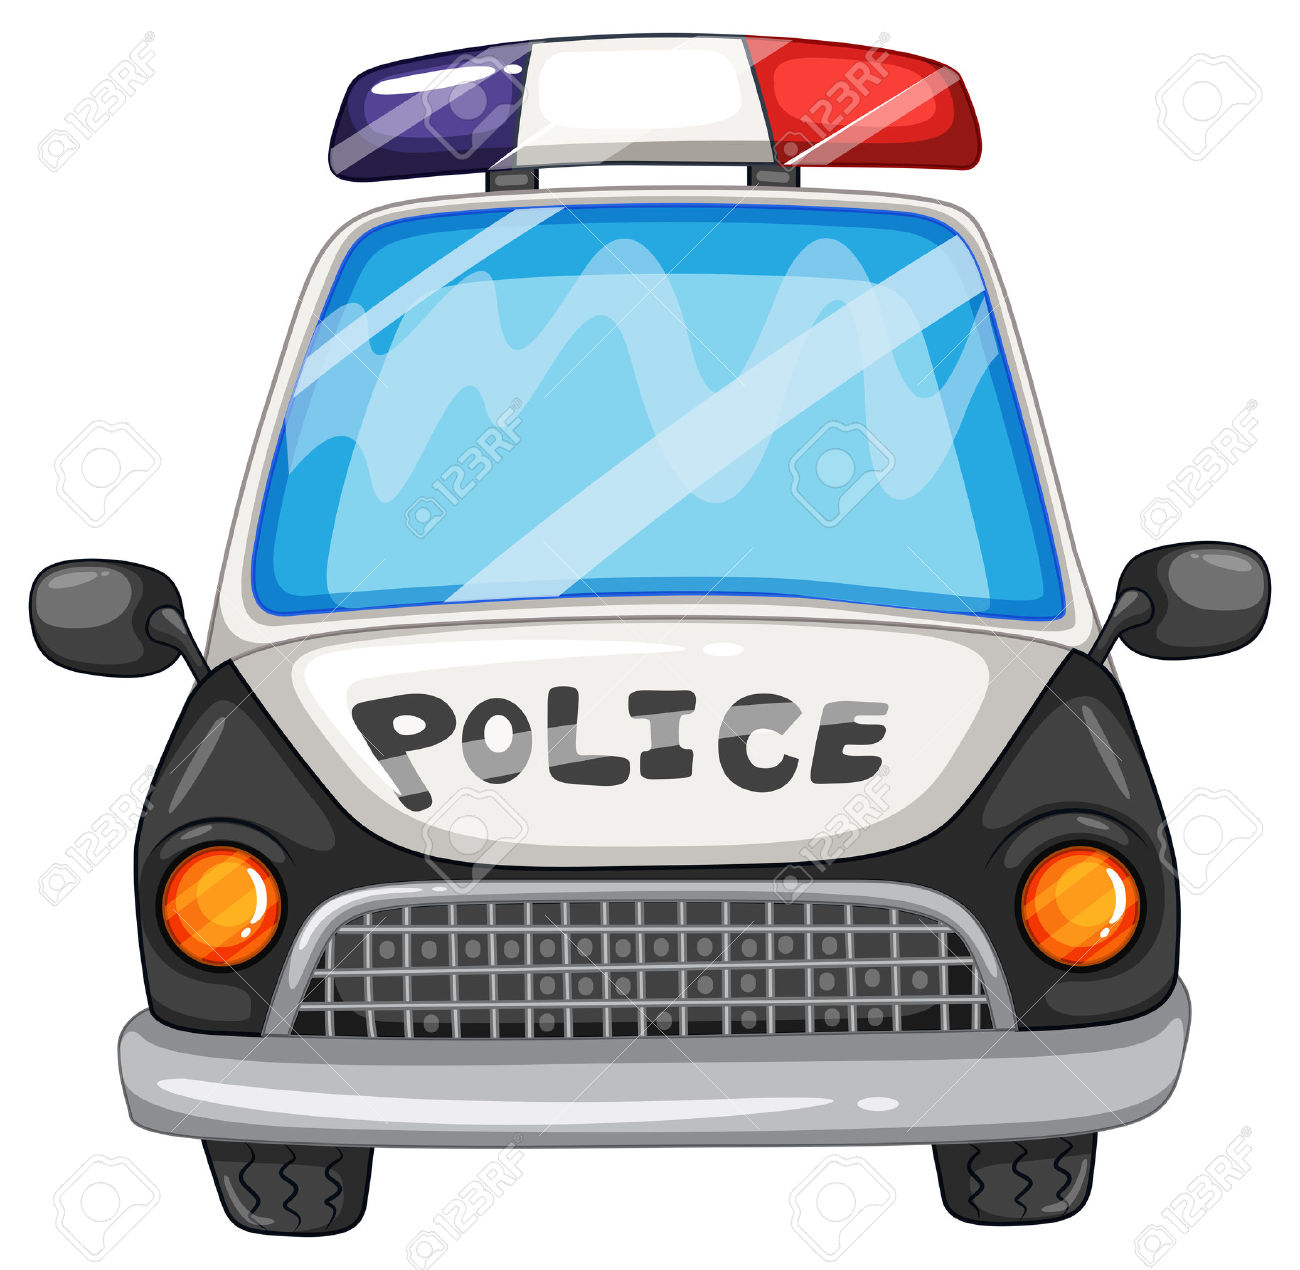 British police car clipart vector free download 6,440 Police Car Cliparts, Stock Vector And Royalty Free Police ... vector free download